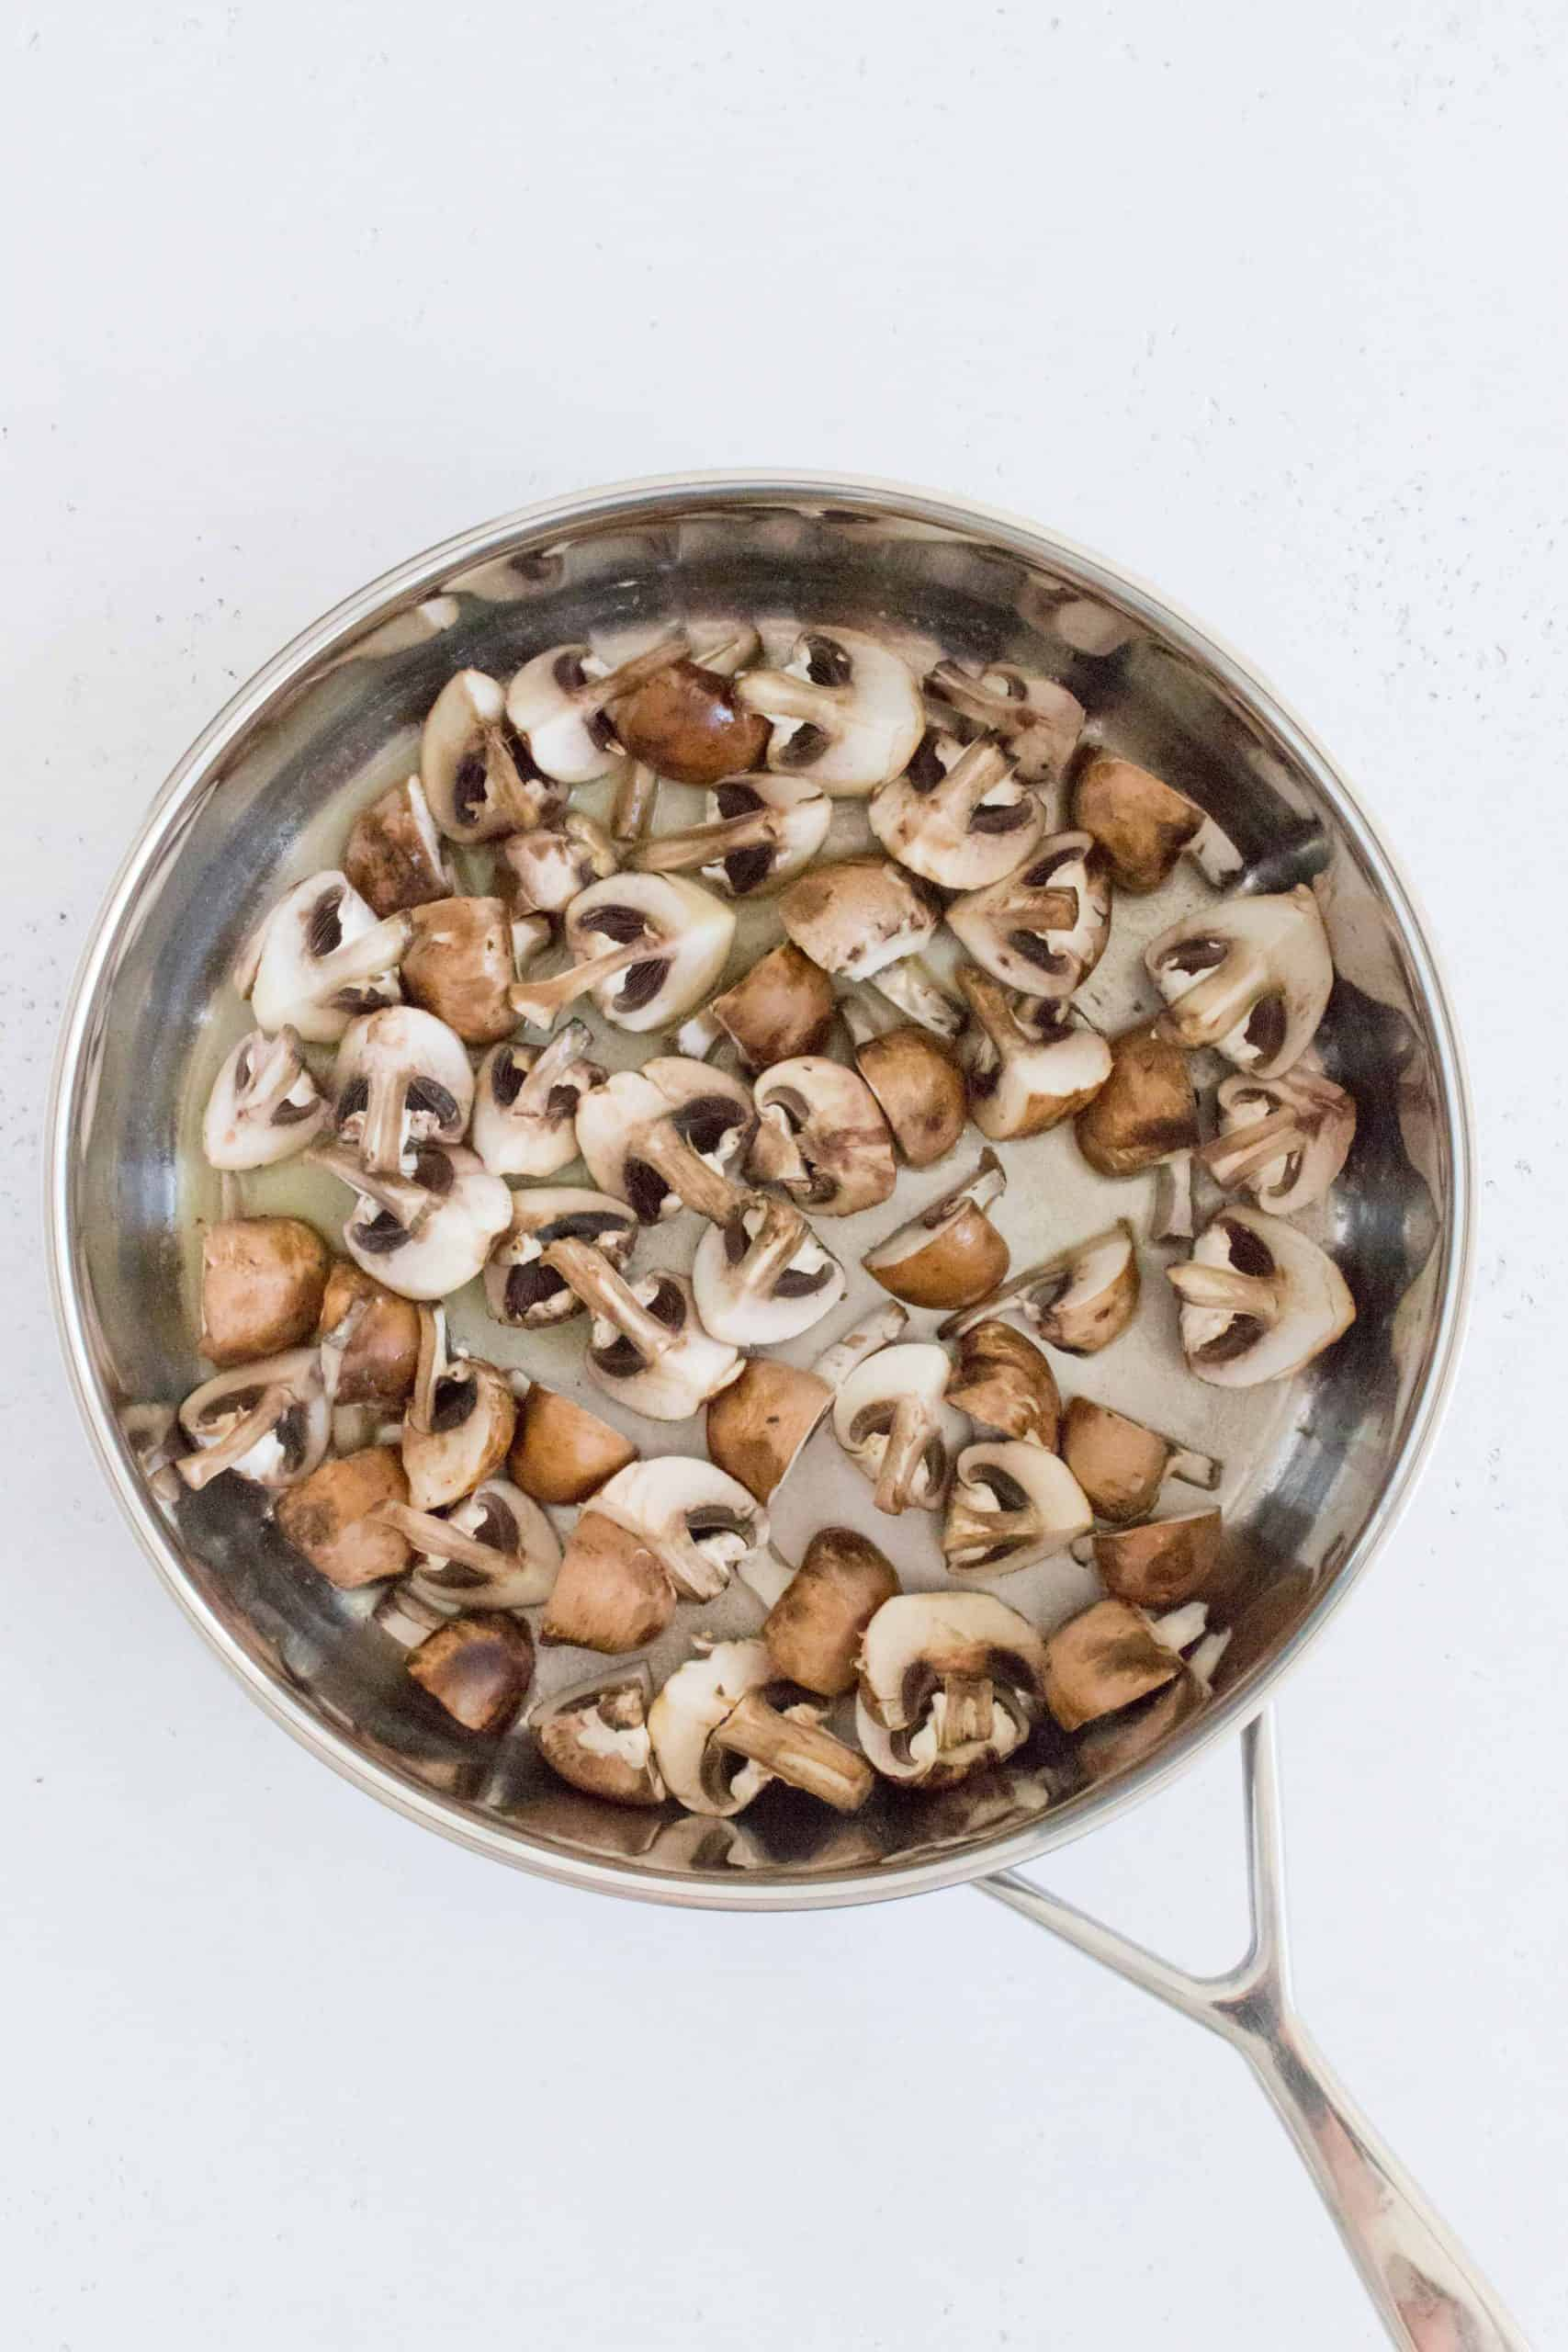 While the water is boiling, in a medium sized pan, melt your butter and sauté the mushrooms.